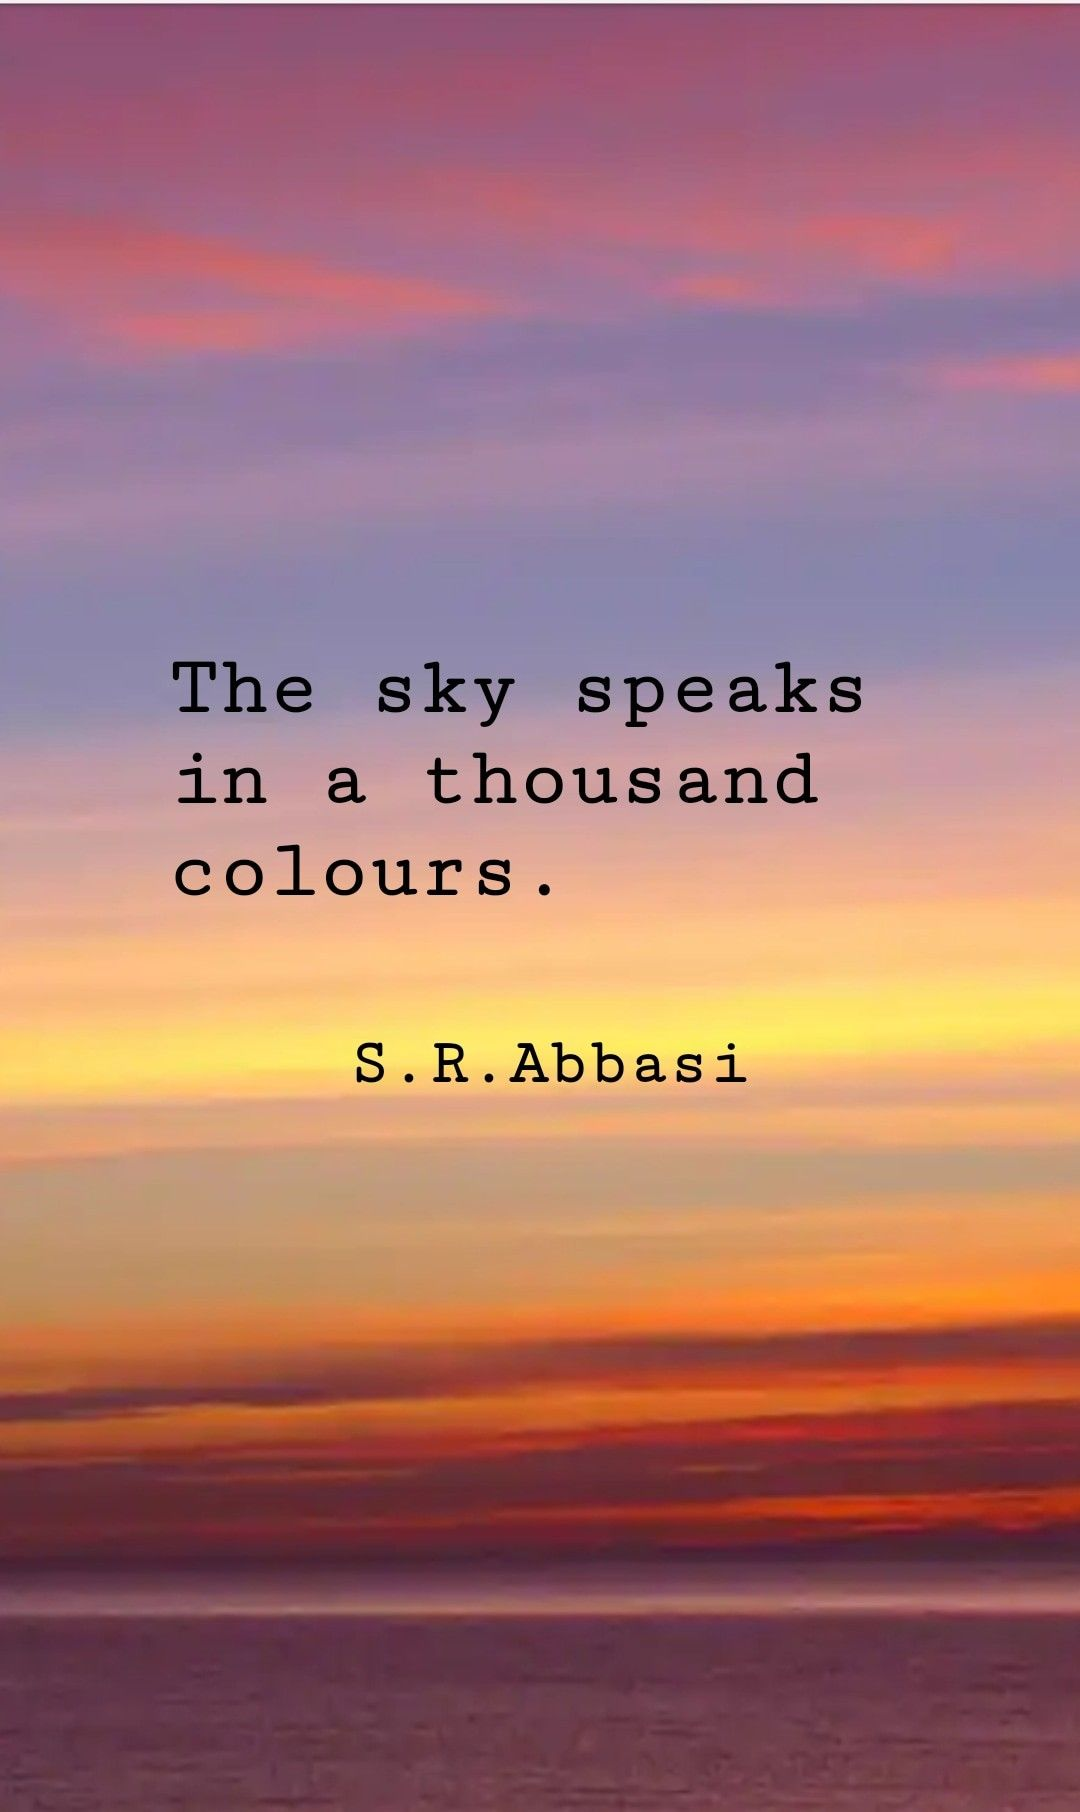 The sky speaks in a thousand colours. S. R. Abbasi | Sunset quotes ...